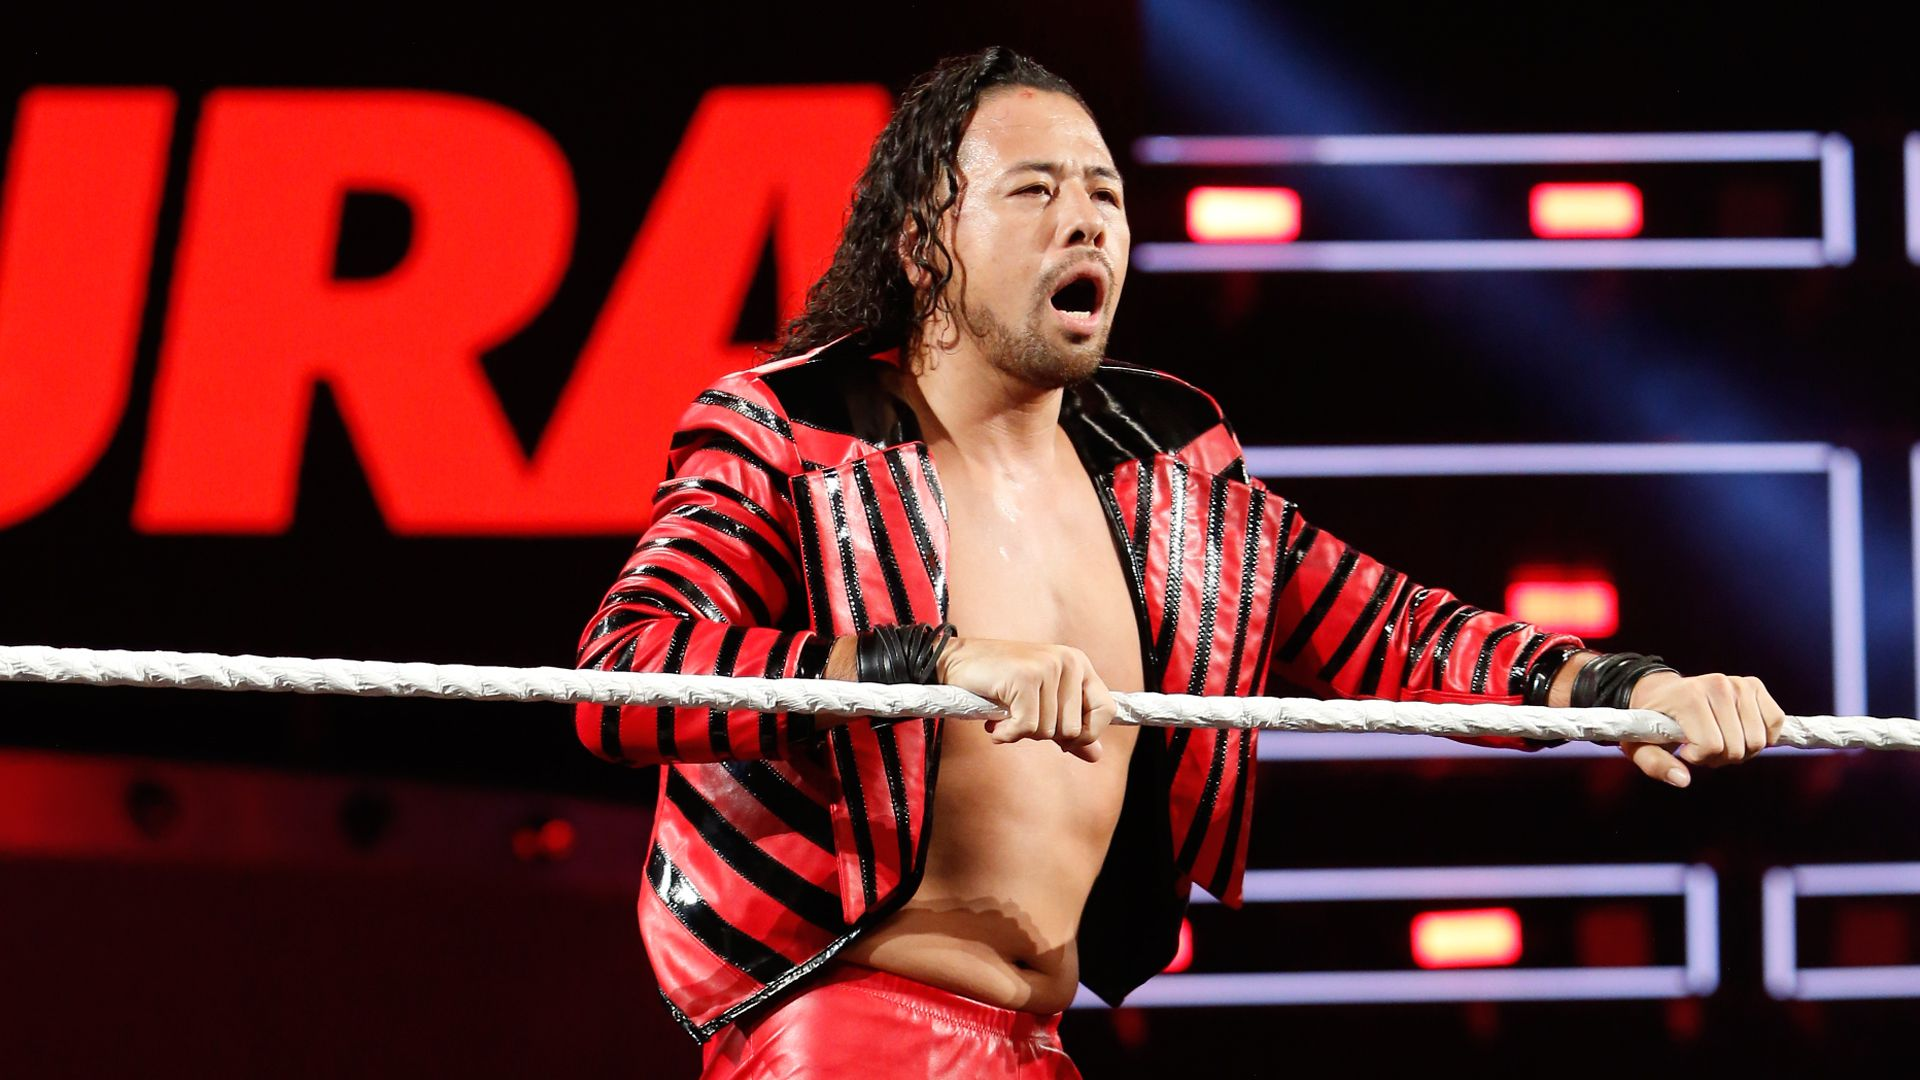 1920x1080 Shinsuke Nakamura images HD Wallpaper | Beautiful images HD Pictures ...